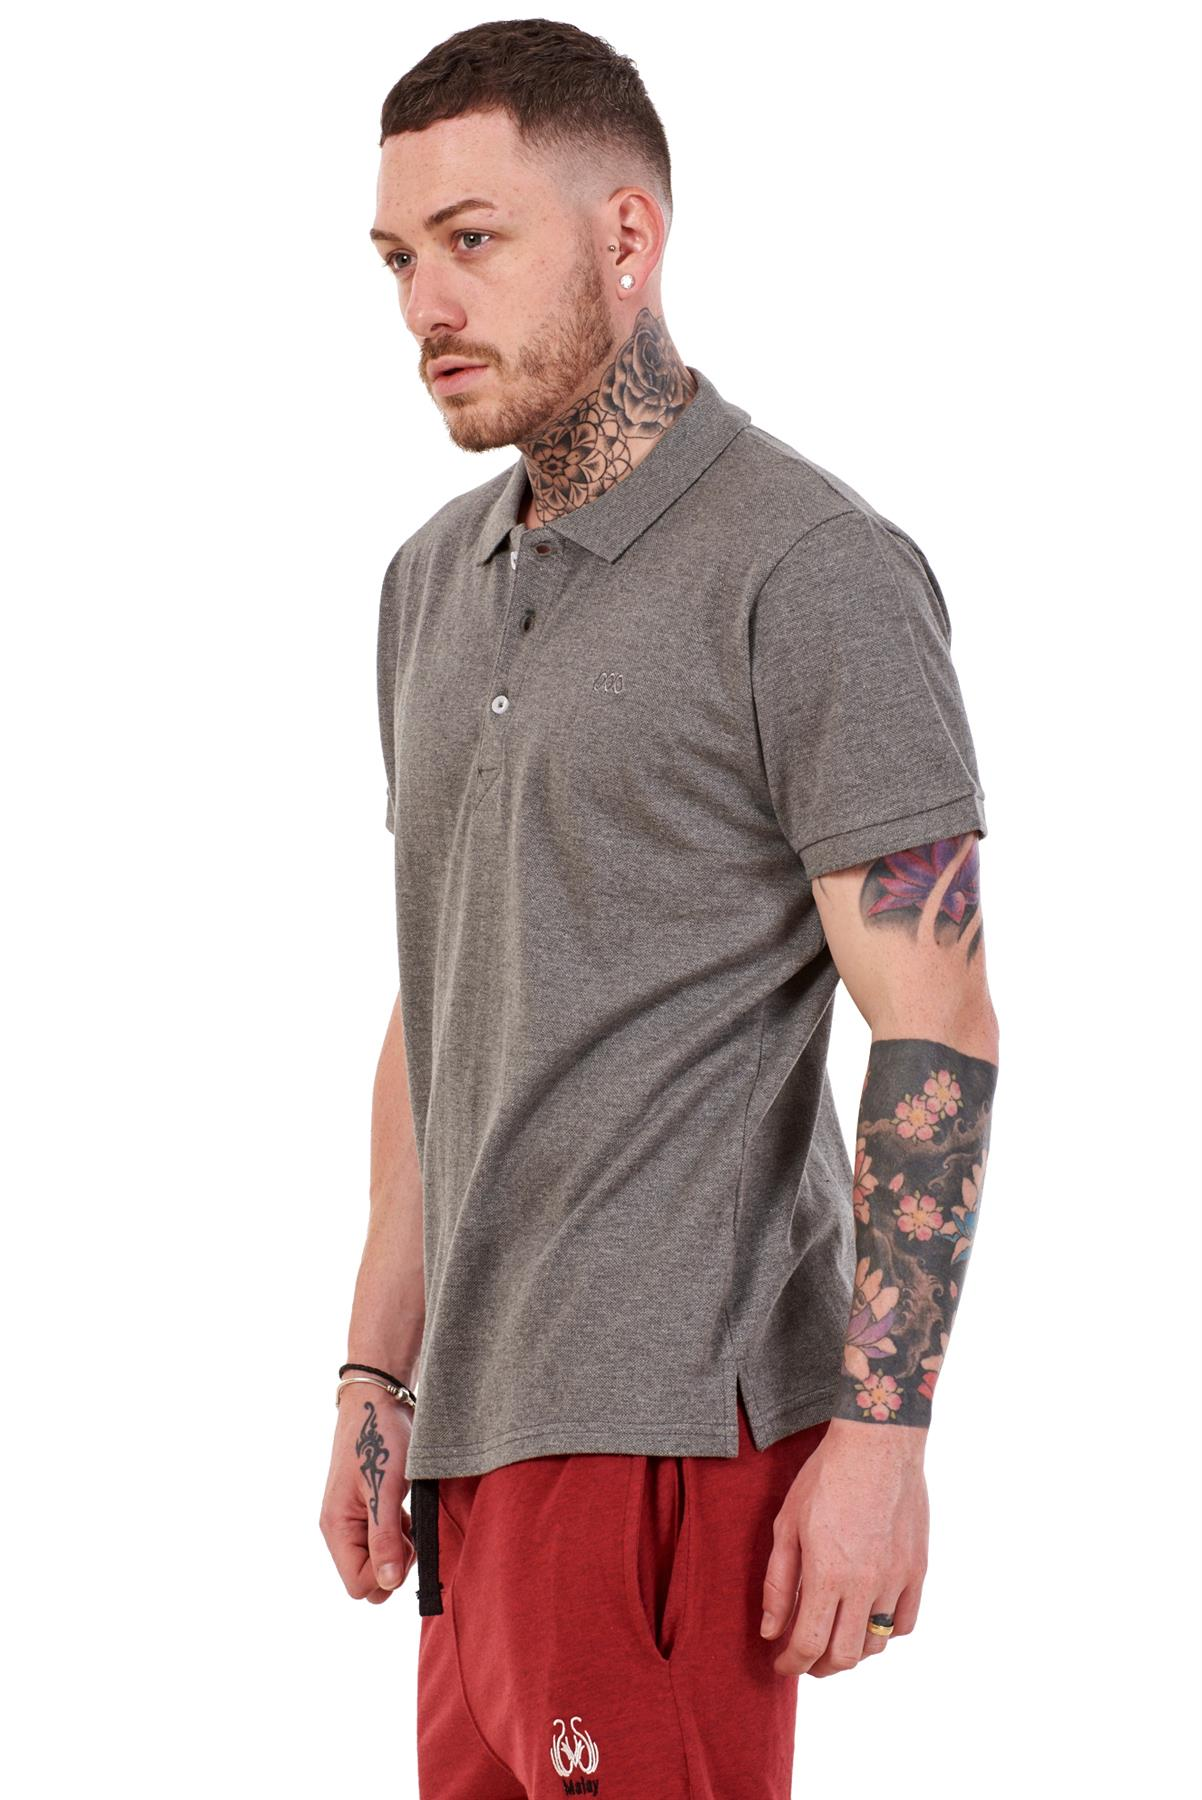 Mens-Plain-Solid-Polo-Cotton-T-Shirts-Regular-fit-Casual-Formal-Shirt-Top-M-XXL thumbnail 14